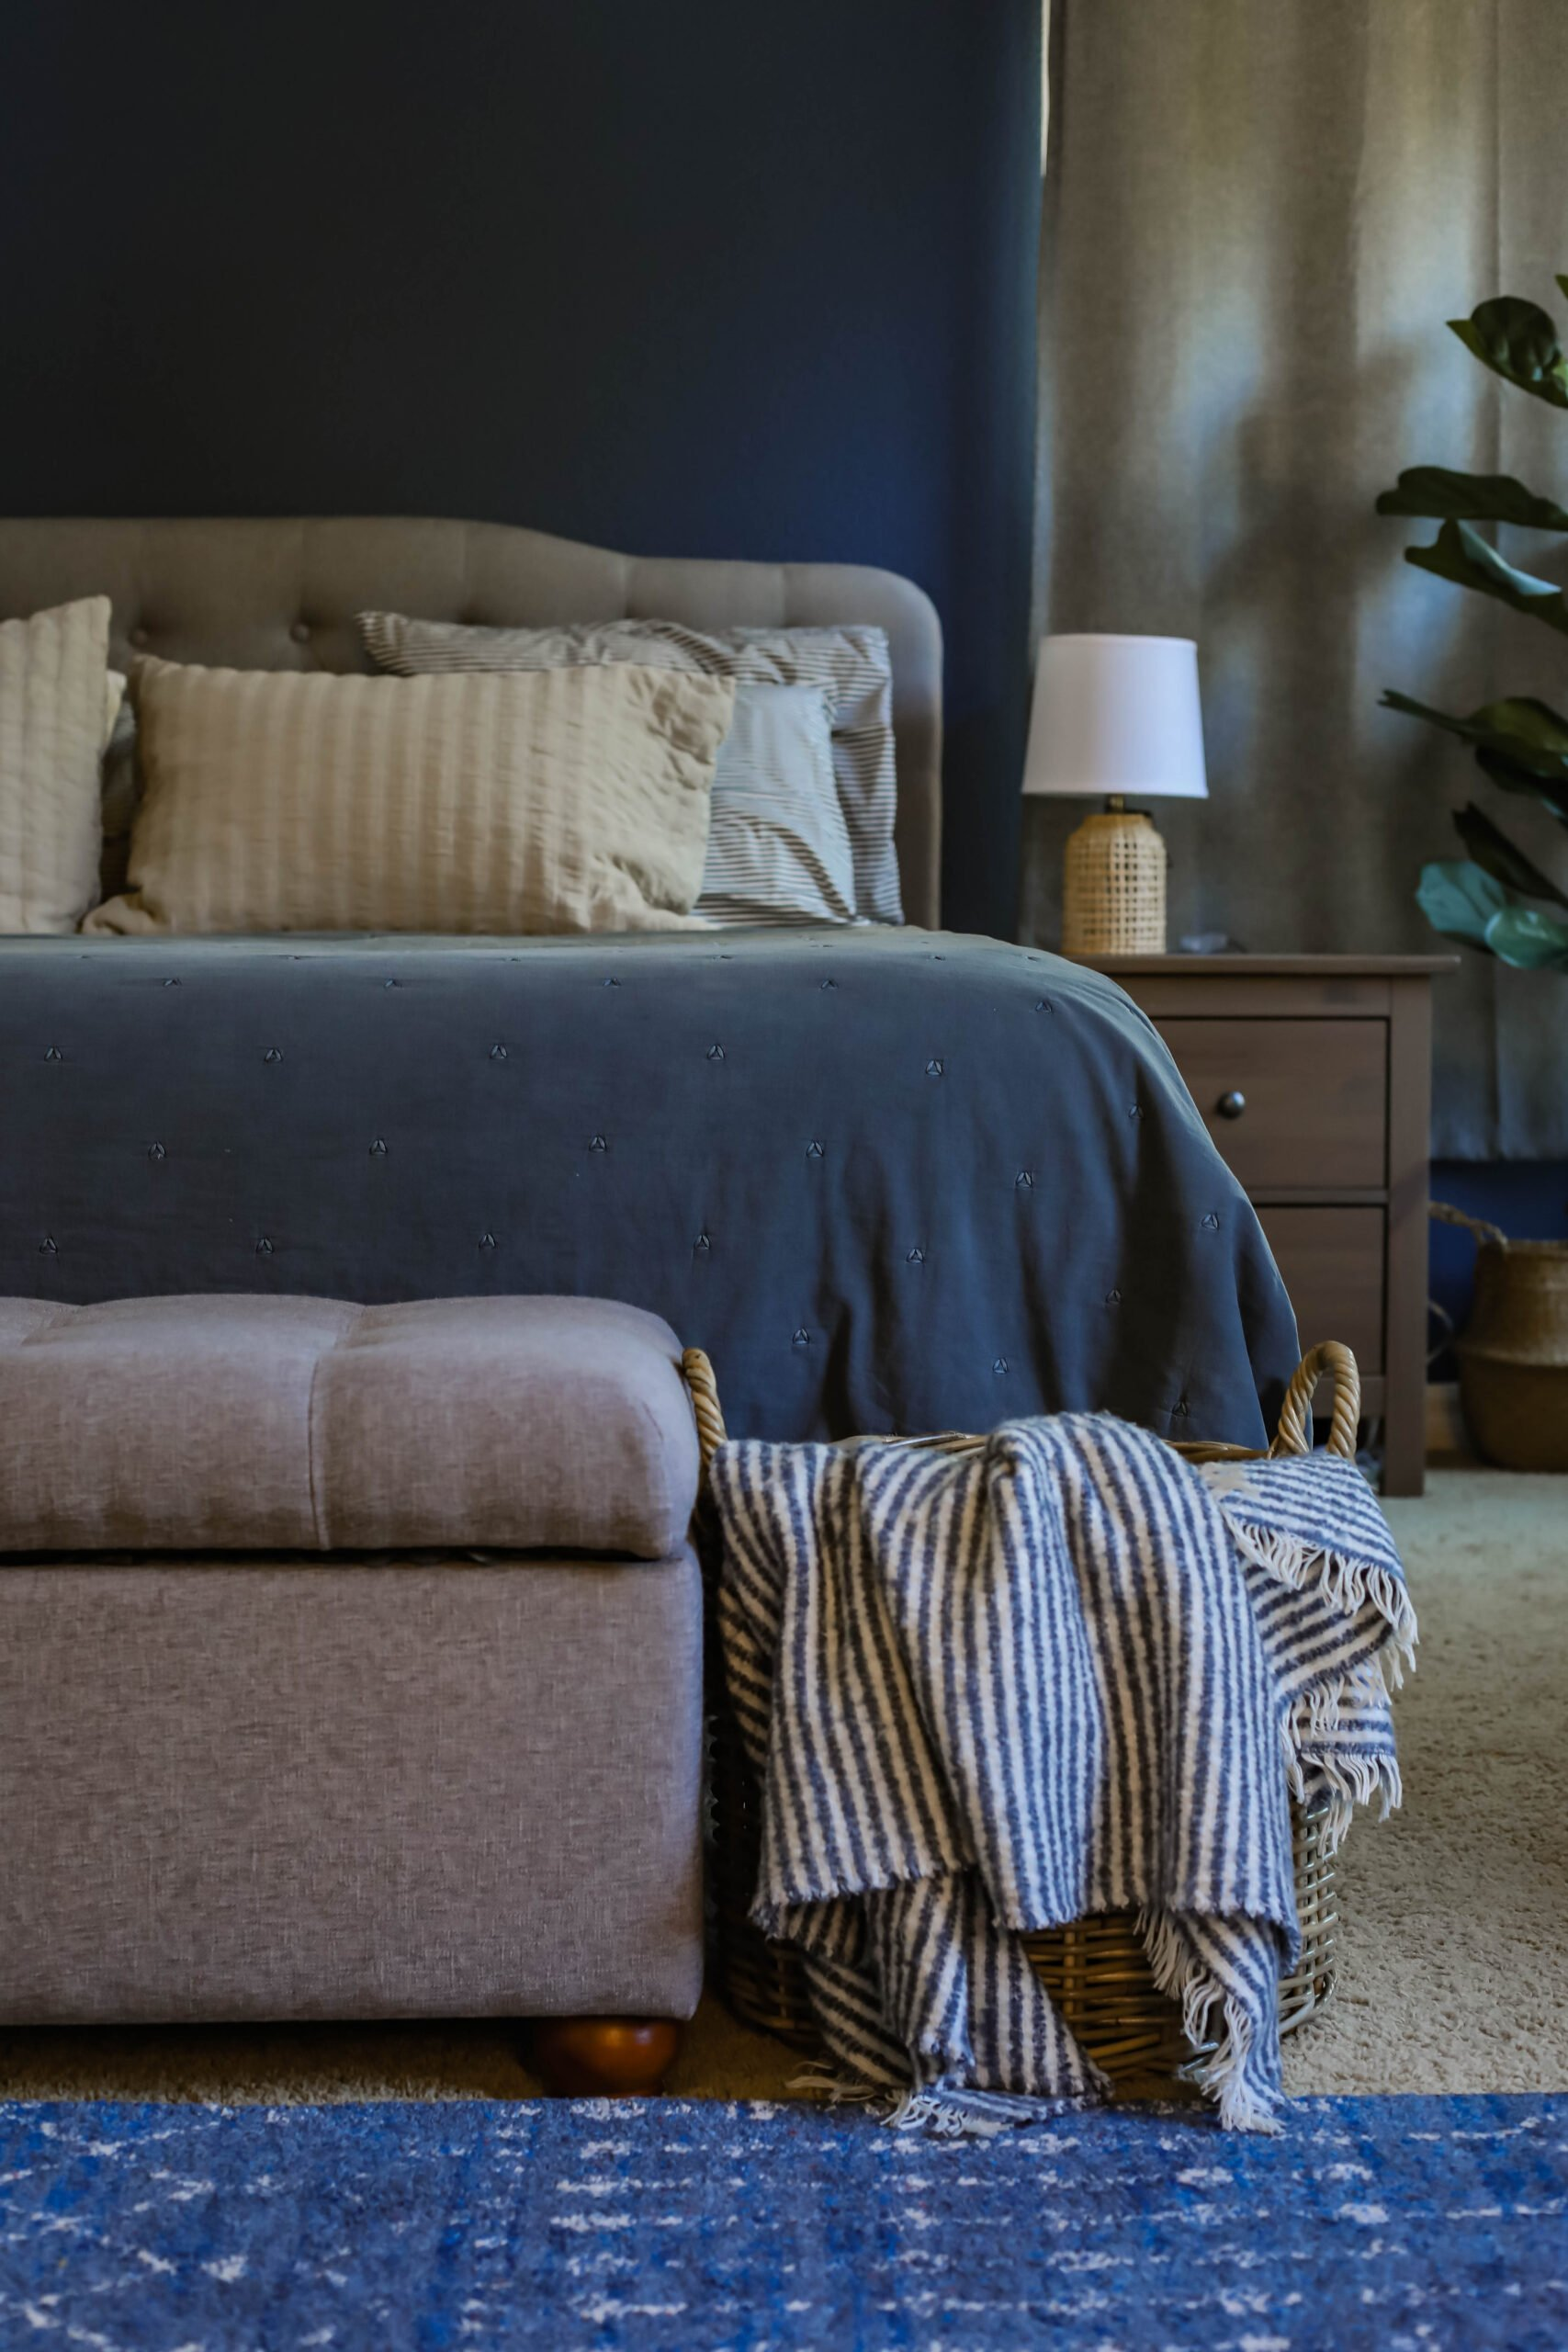 Thinking about a blue accent wall? This bedroom wall is painted with infinite deep sea by behr and it's a great example of a mature blue accent wall bedroom option (it's almost a navy accent wall, just a bit lighter!)